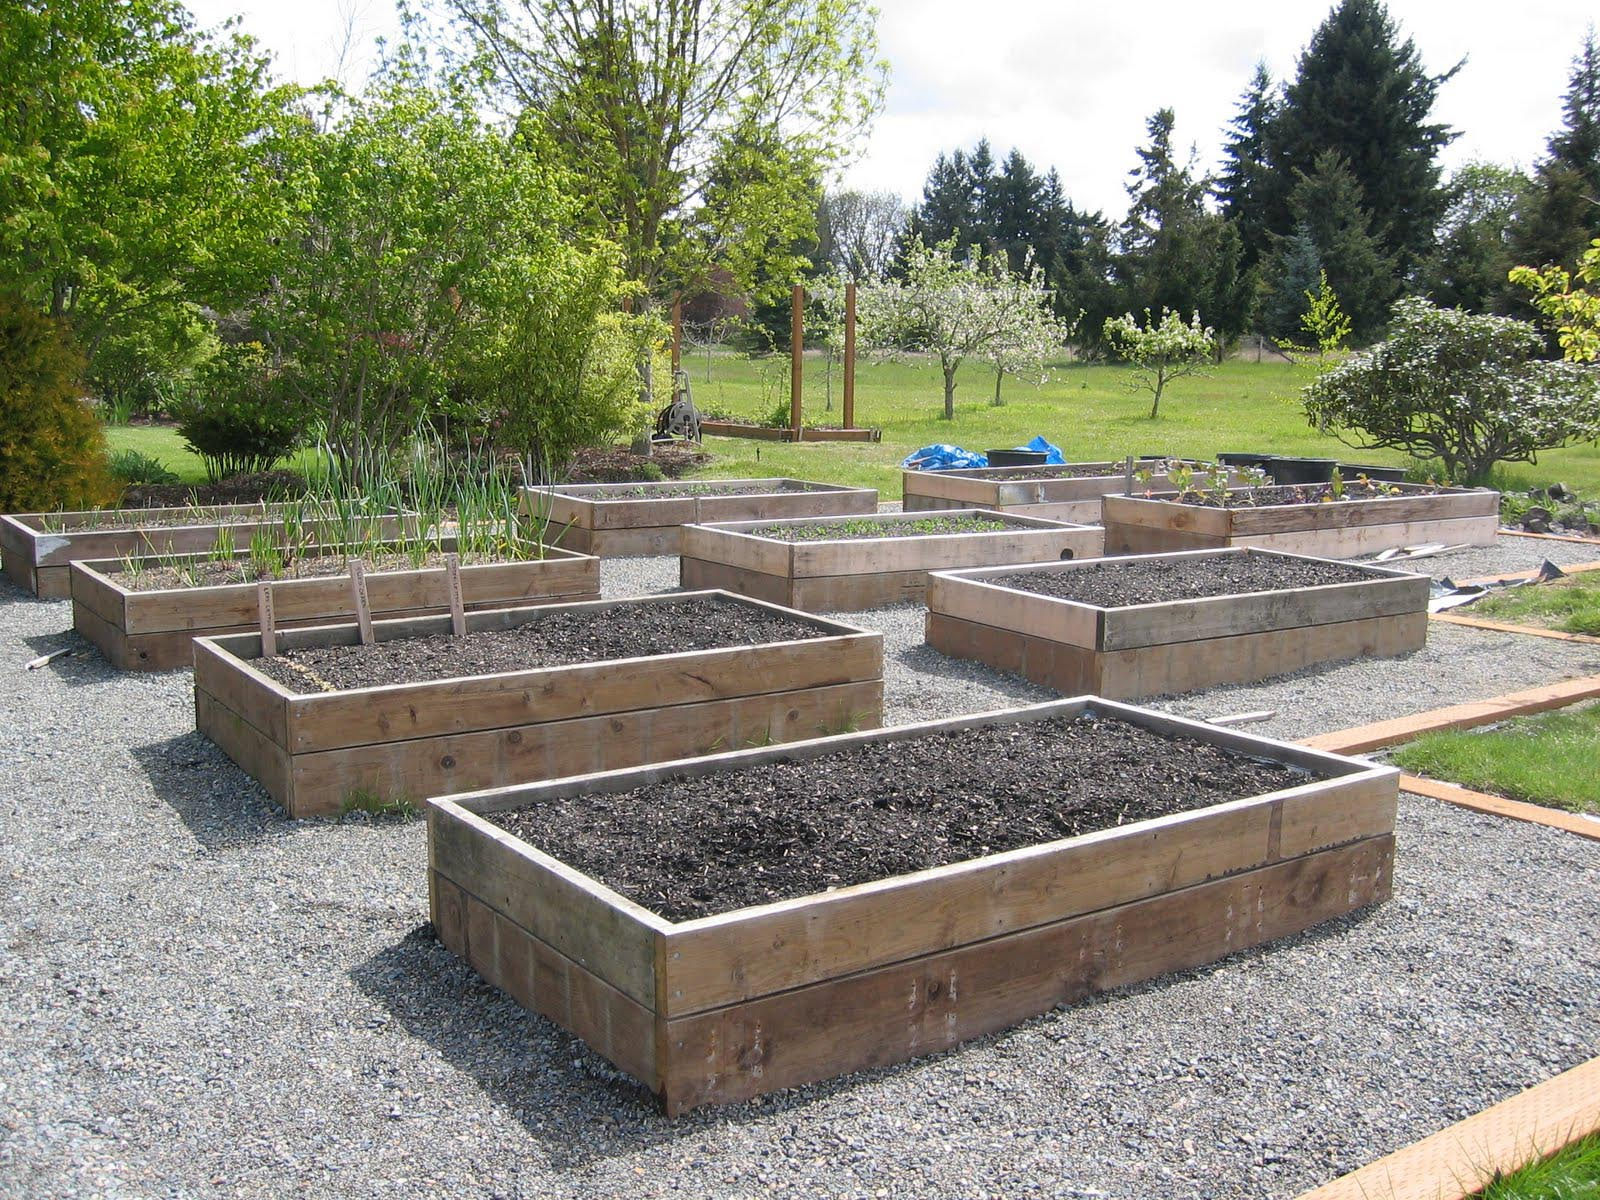 A Raised Vegetable Garden in Your Homestead Garden Design Ideas